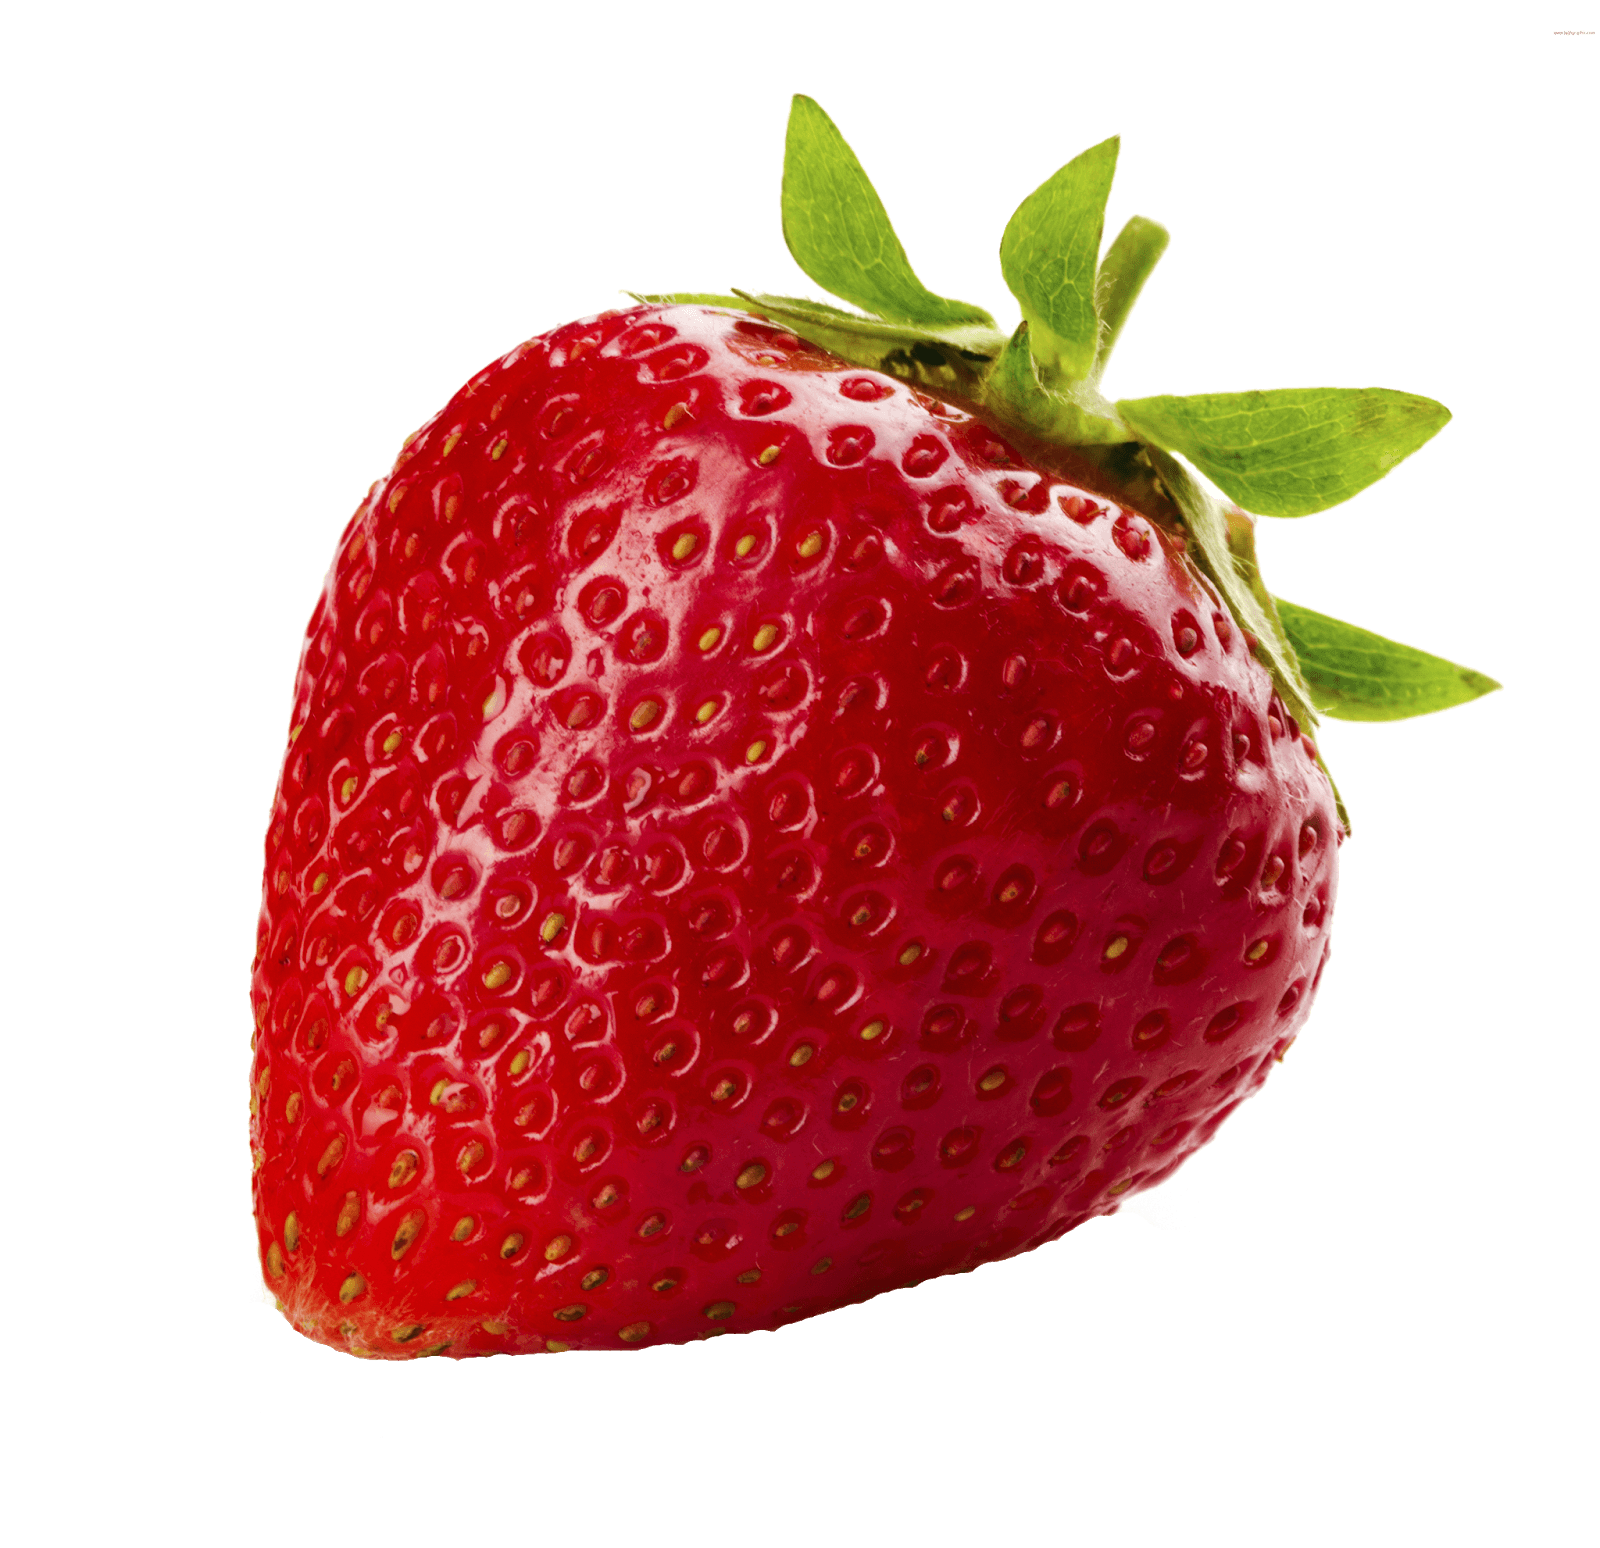 Strawberries clipart clear background. Group of transparent png